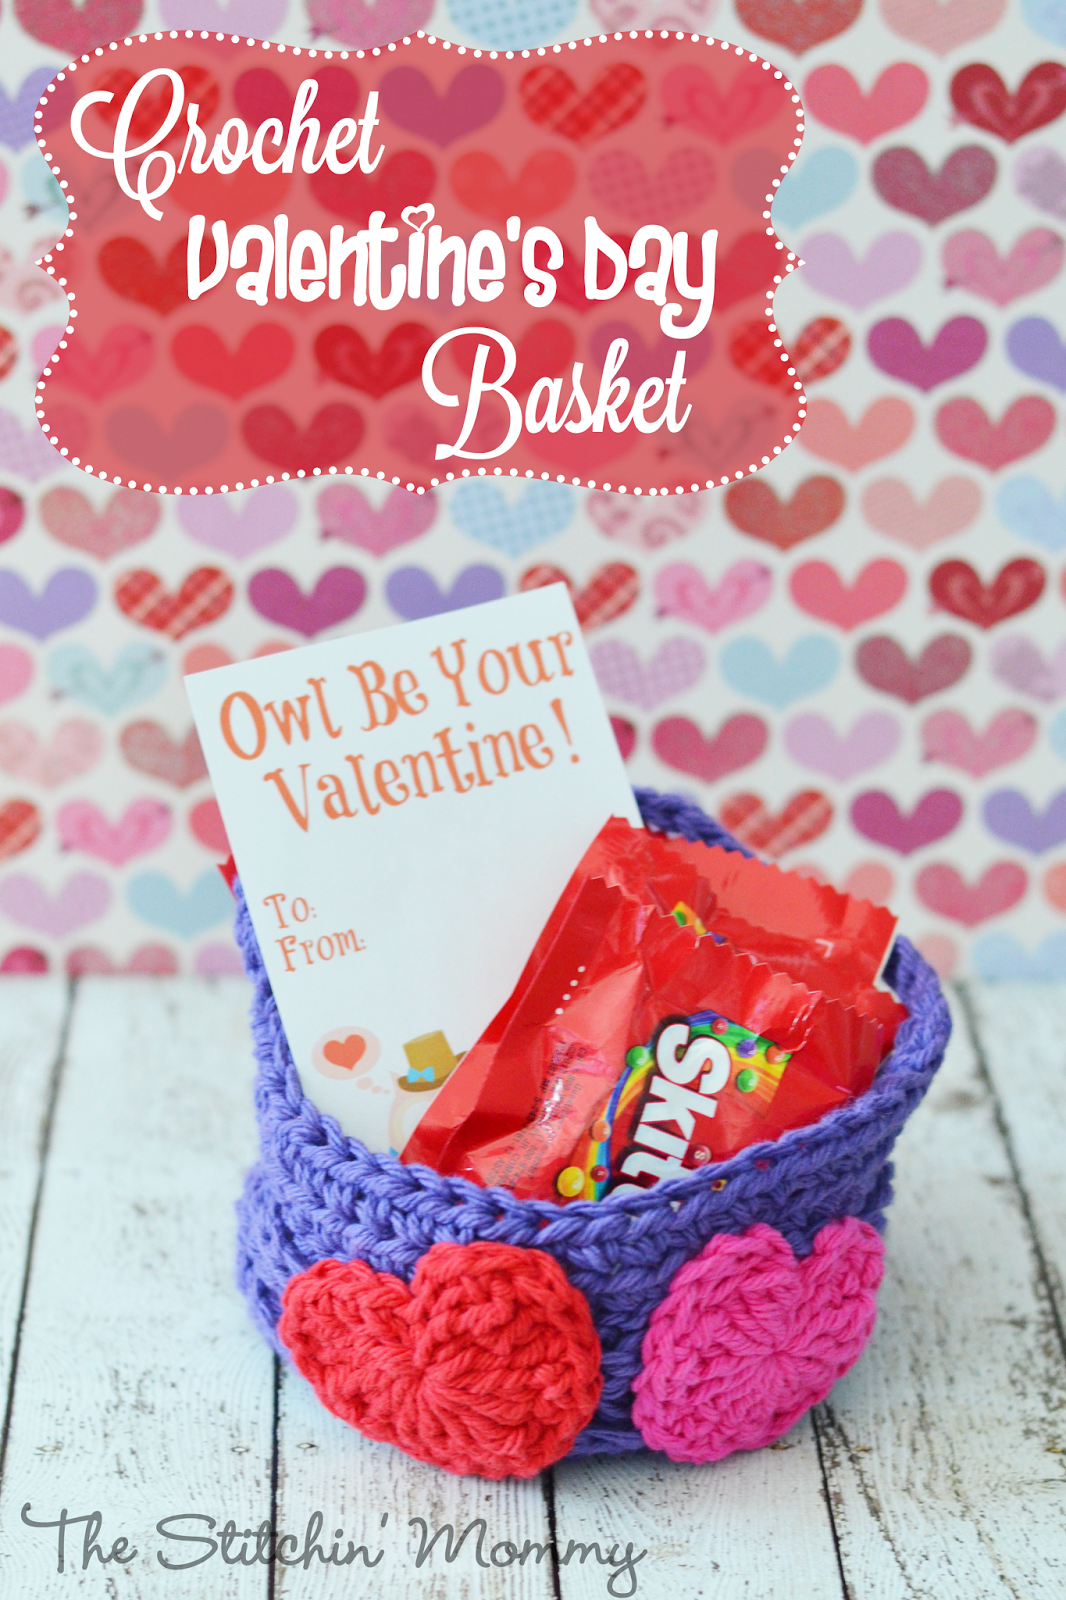 Crochet Valentineu0027s Day Basket By The Stitchinu0027 Mommy  Https://www.thestitchinmommy